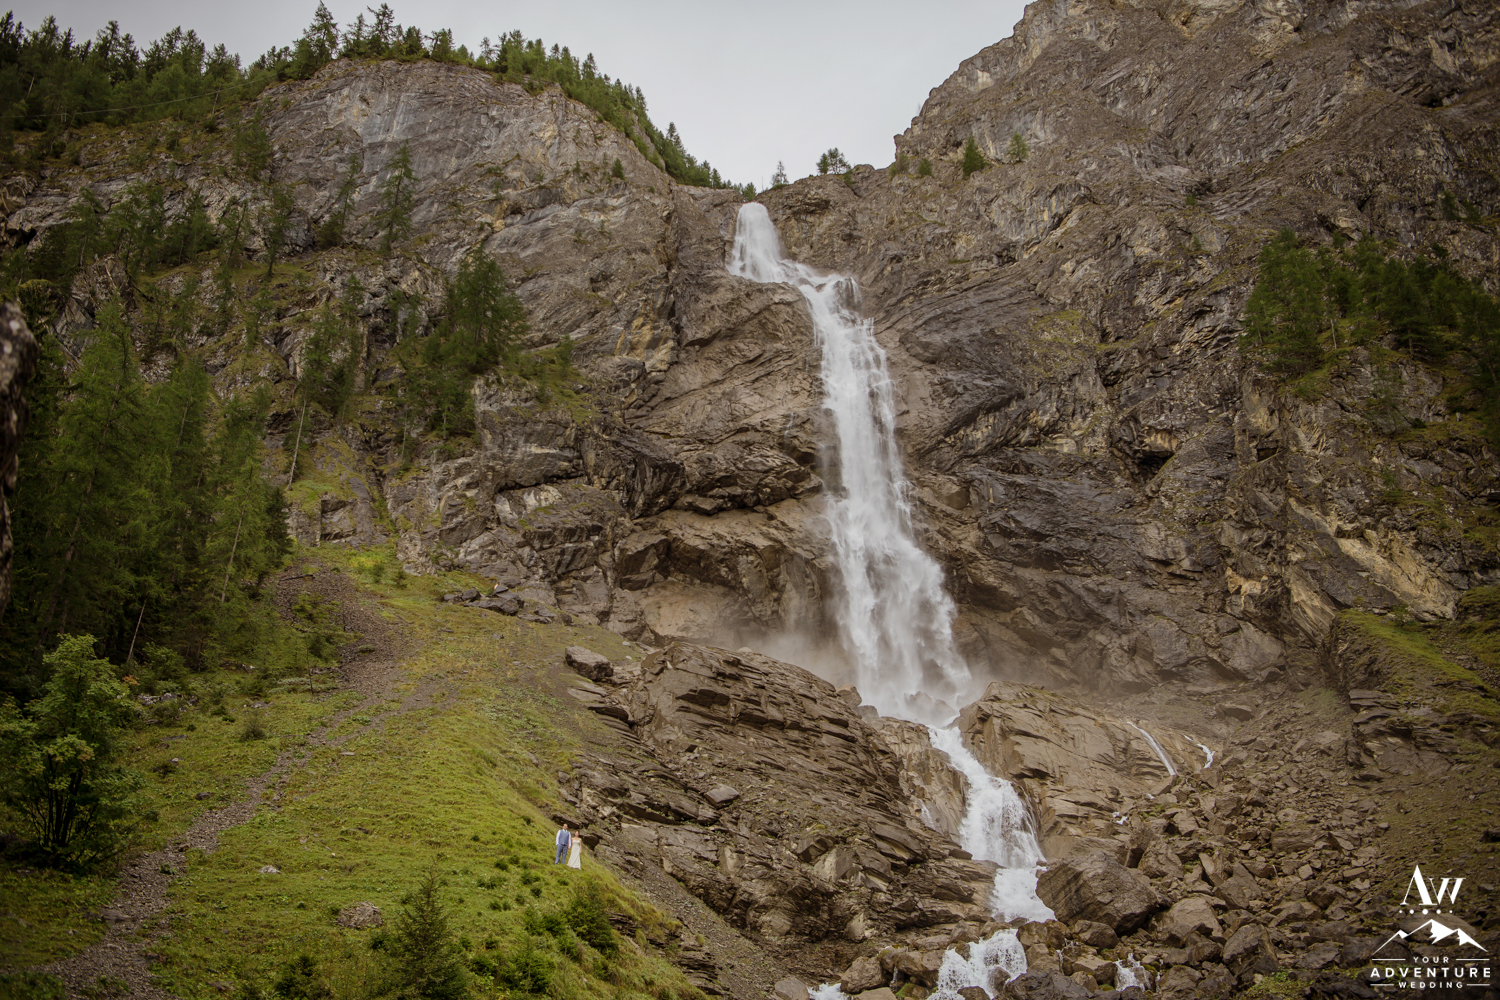 Adventure Wedding at Engstligenalp Waterfall in Switzerland